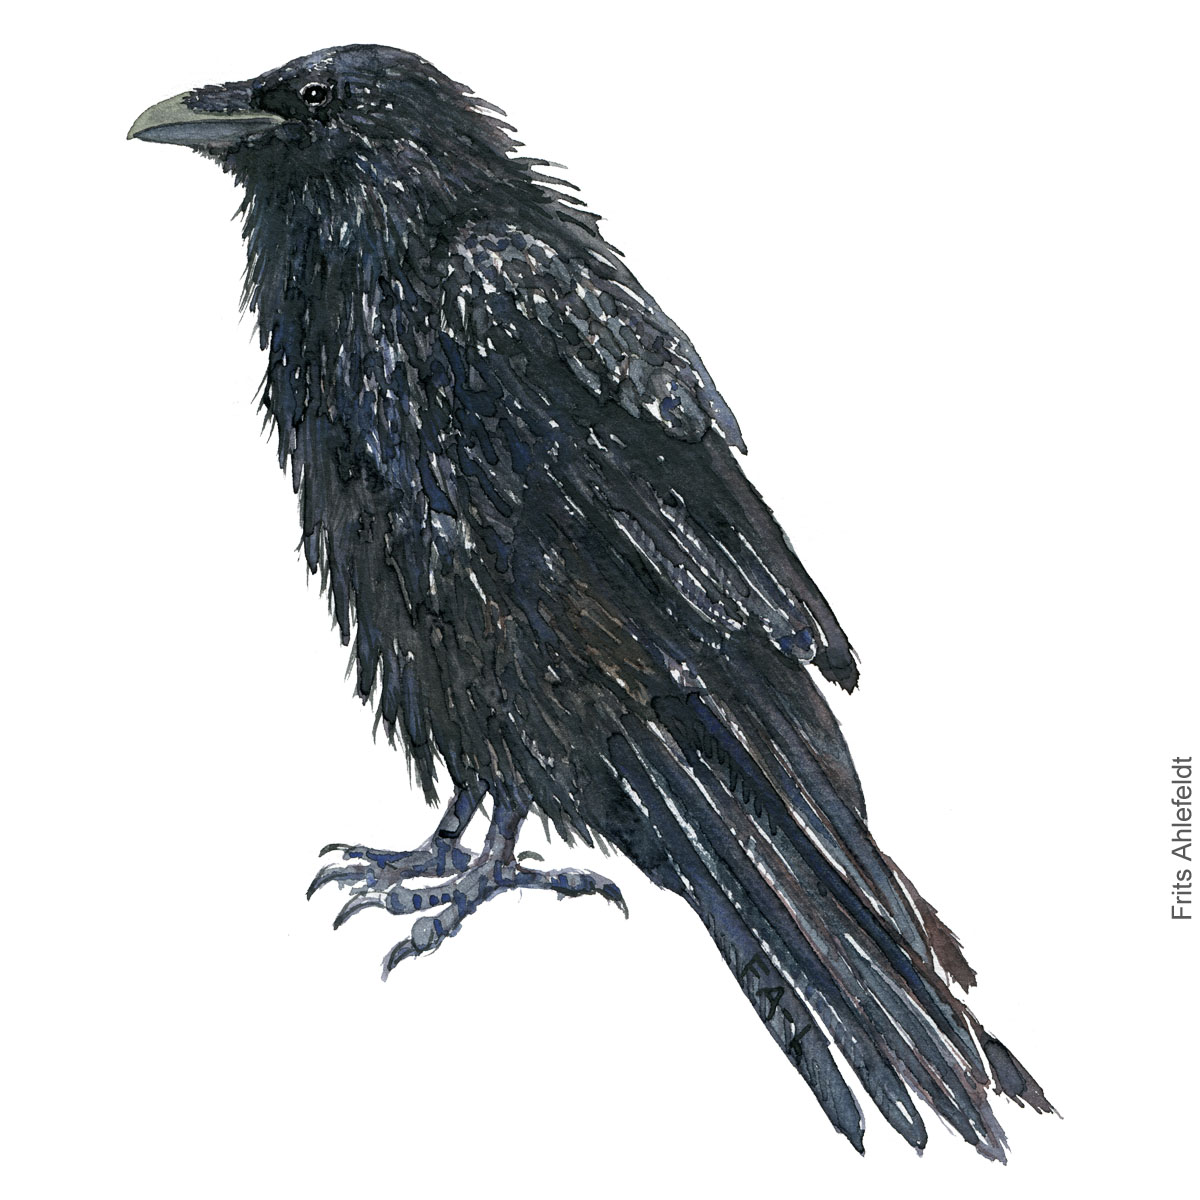 Ravn - Raven - Bird painting in watercolor by Frits Ahlefeldt - Fugle akvarel